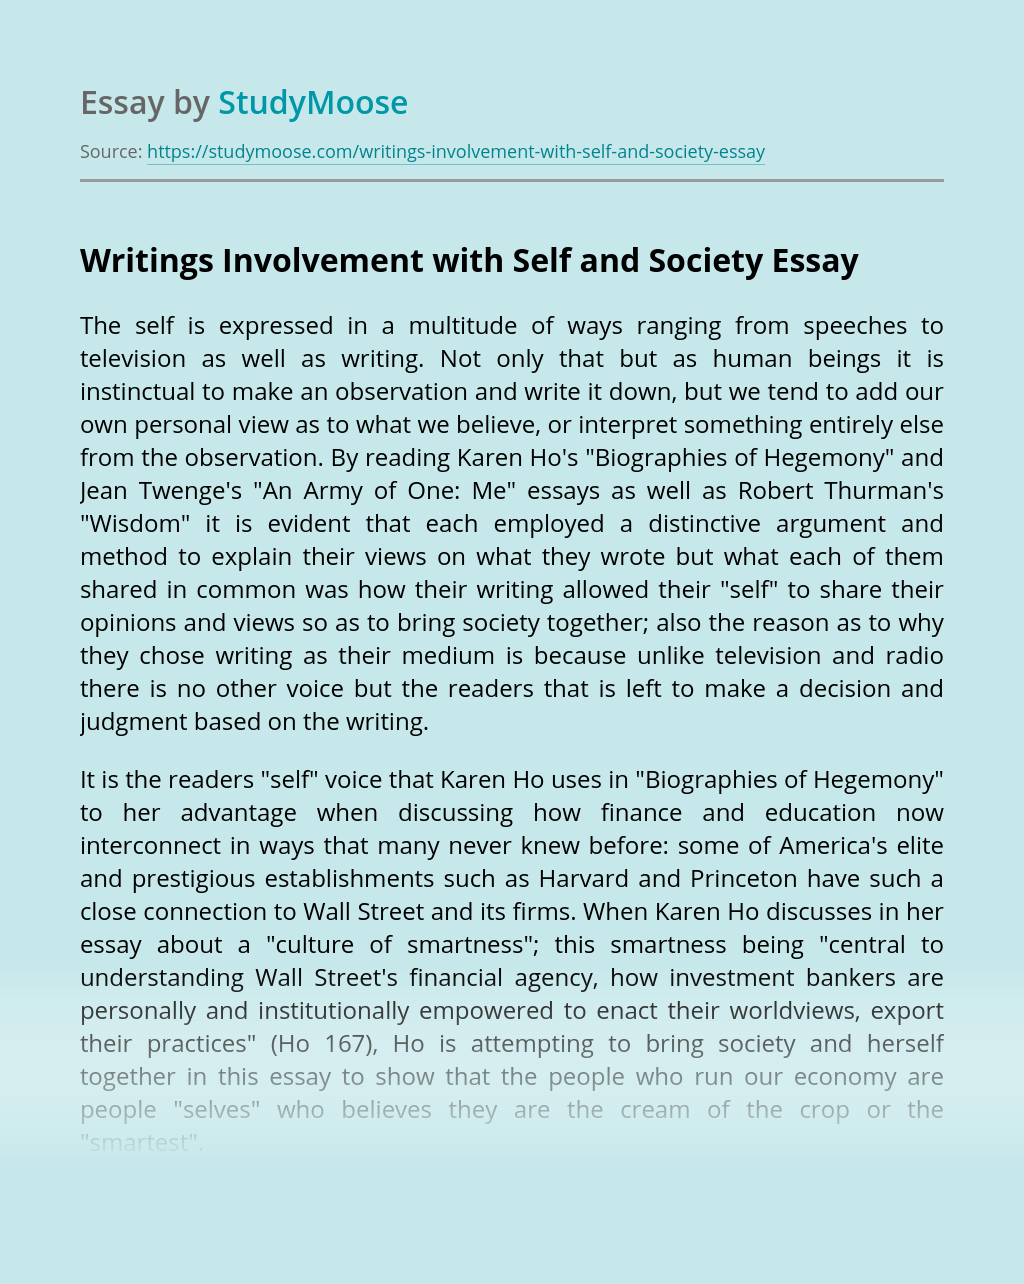 Writings Involvement with Self and Society